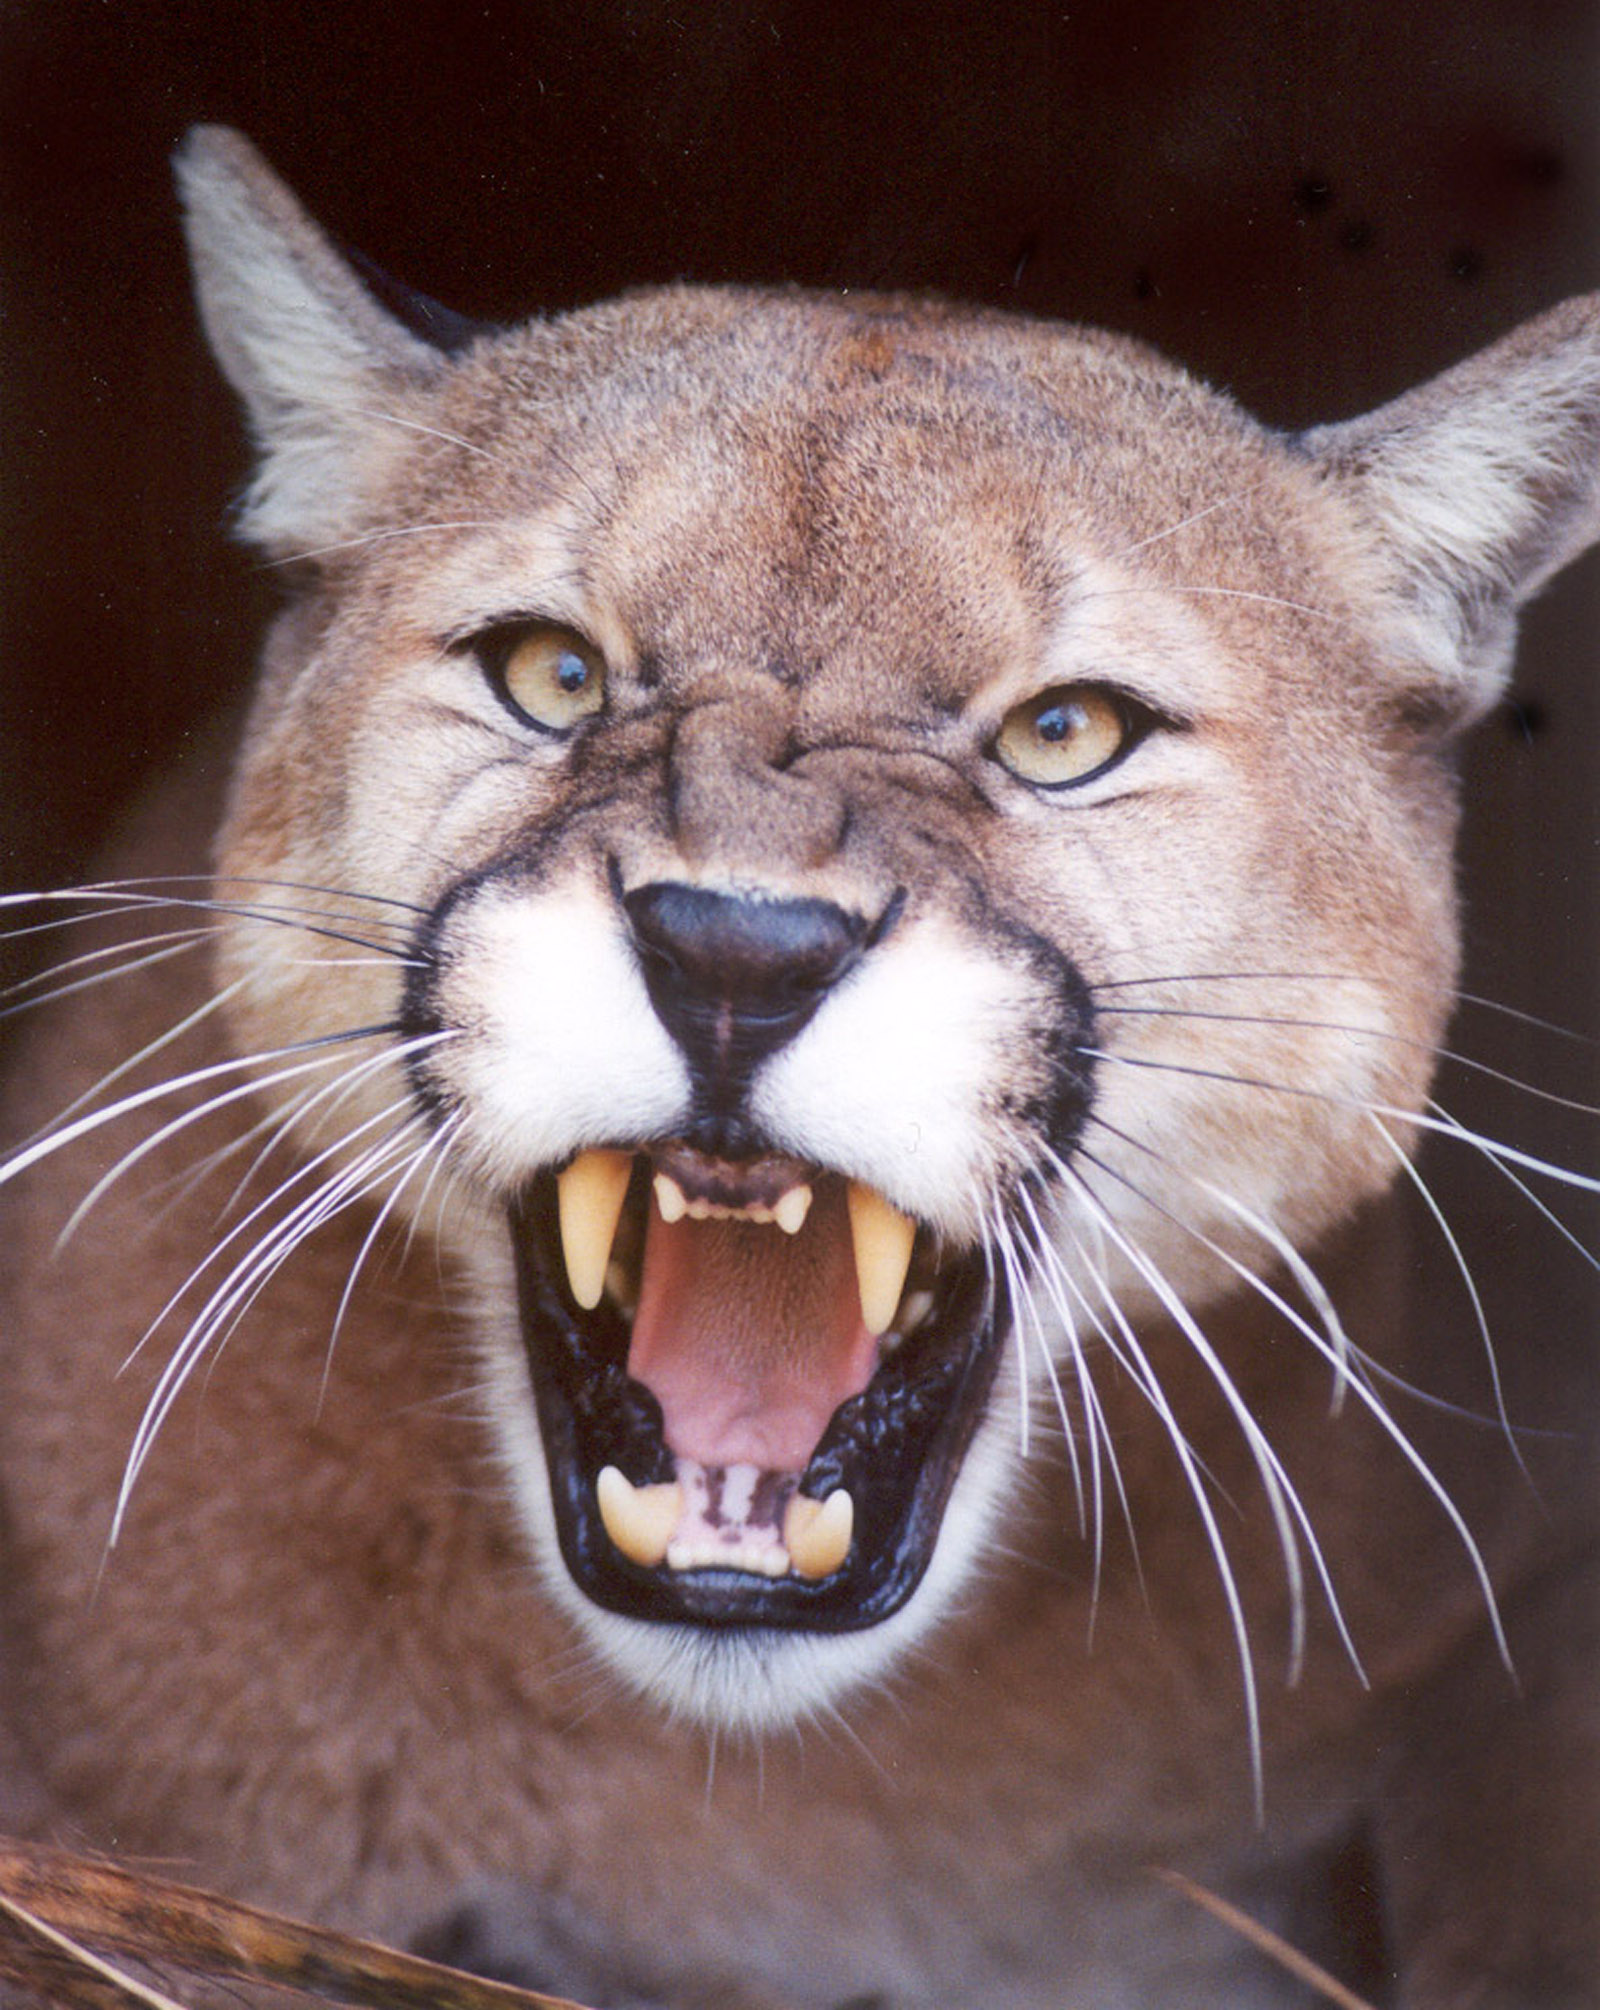 Mountain lion face - photo#22